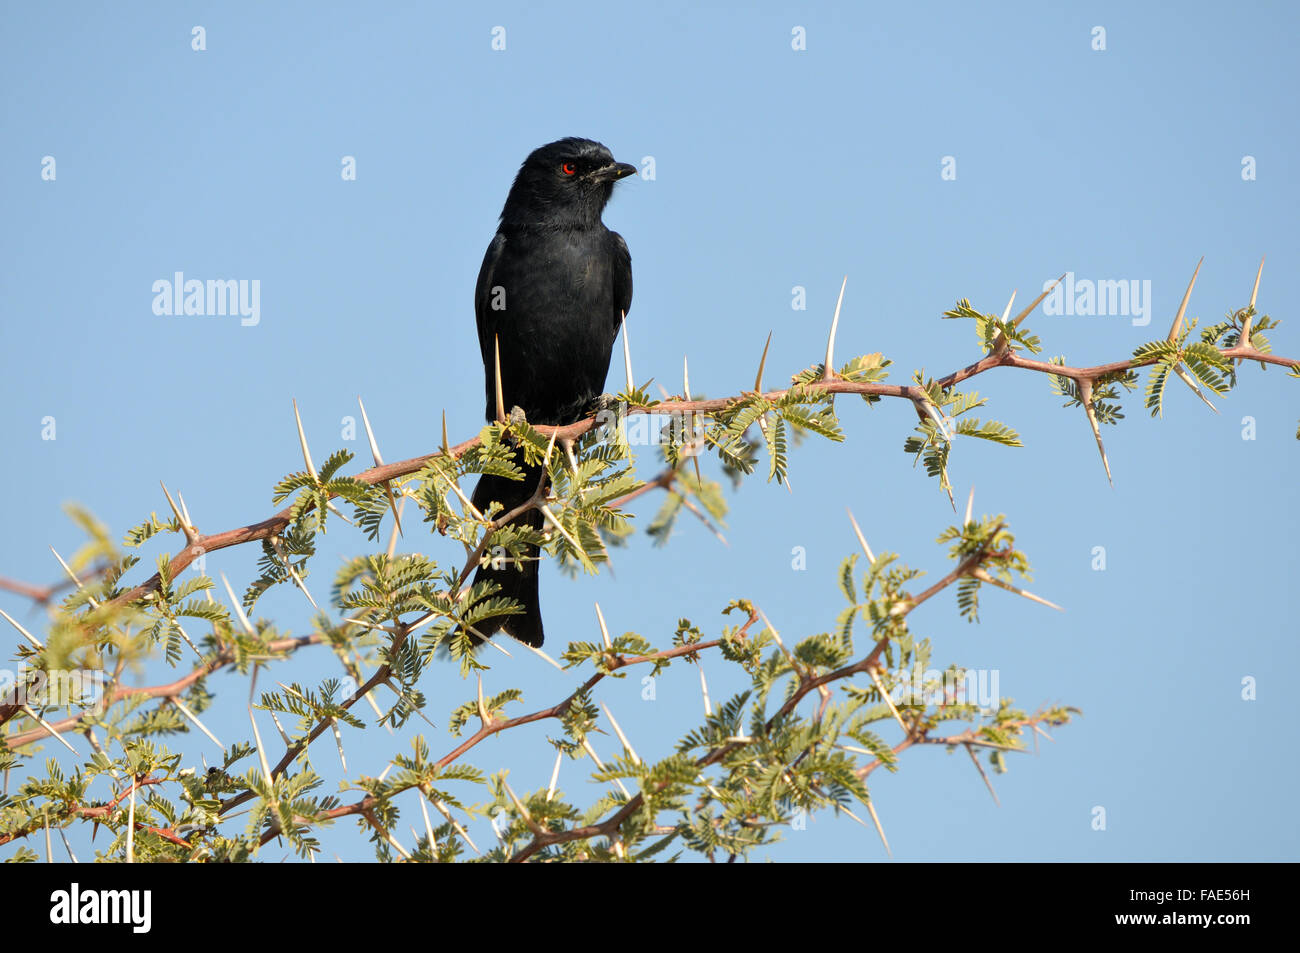 A Southern Black Flycatcher in the Kgalagadi Transfrontier Park, South Africa - Stock Image